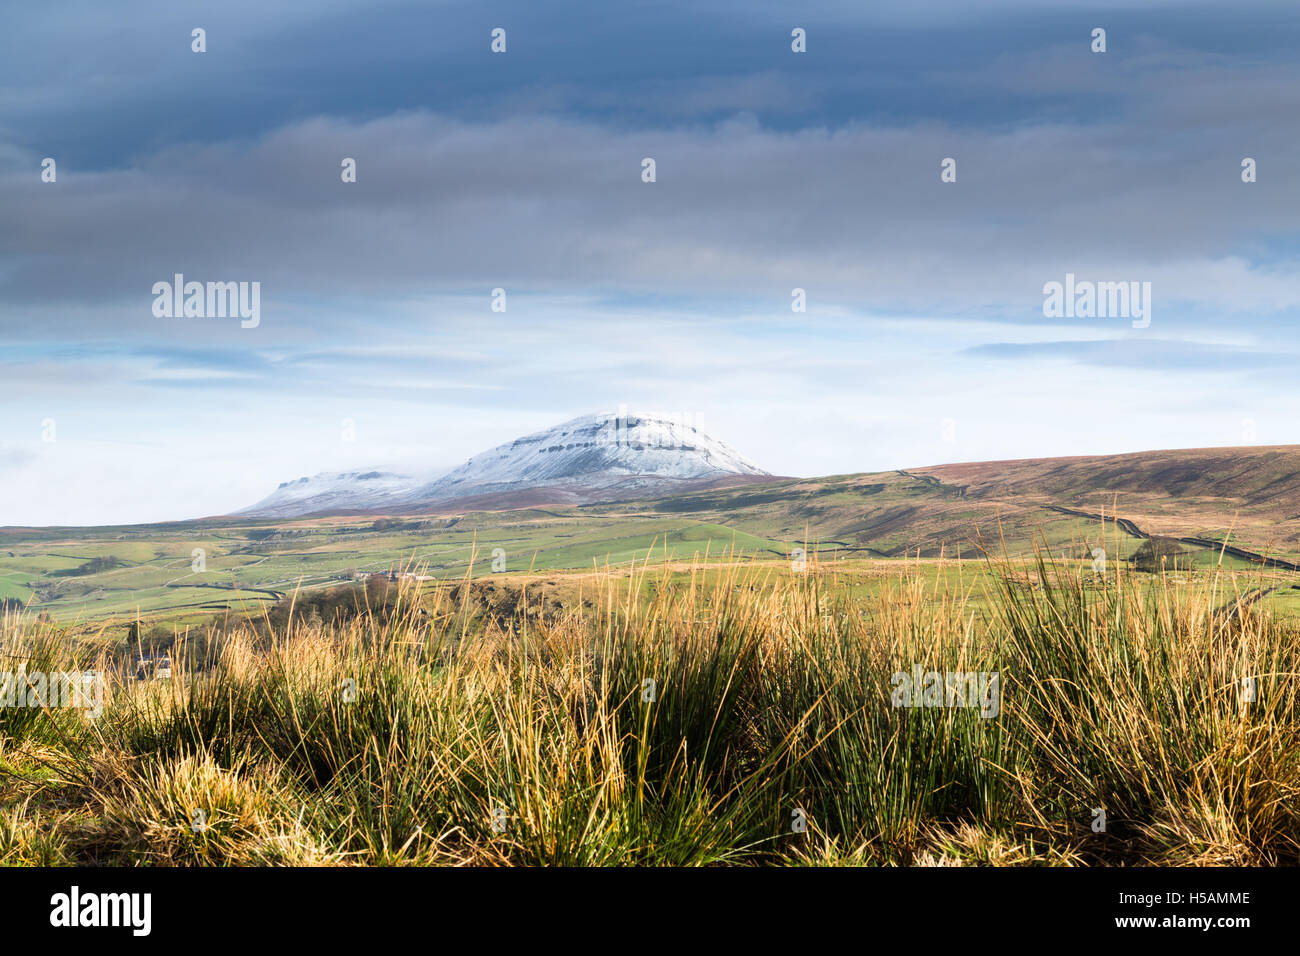 Snow covered Pen-y-ghent, one of the 3 peaks in the Yorkshire Dales National Park, UK - Stock Image